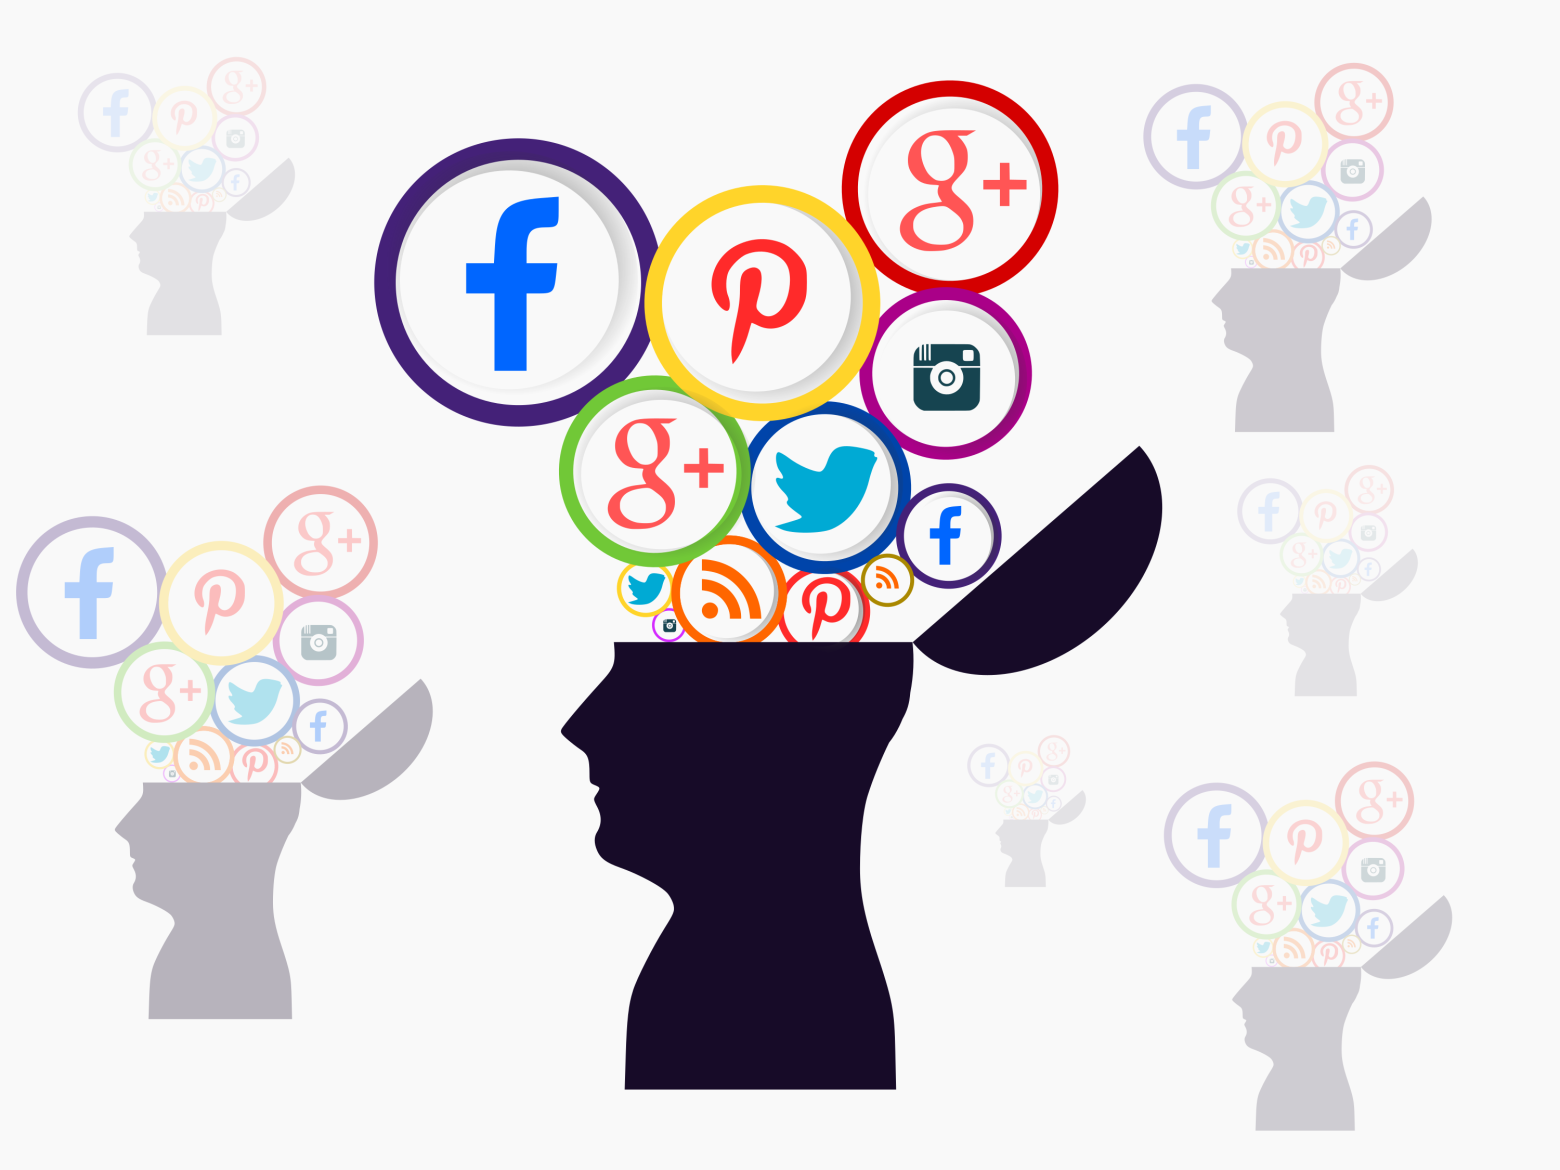 the power of social media in What is the real impact of social media article  increased visibility of issues has shifted the balance of power from the hands of a few to the masses.